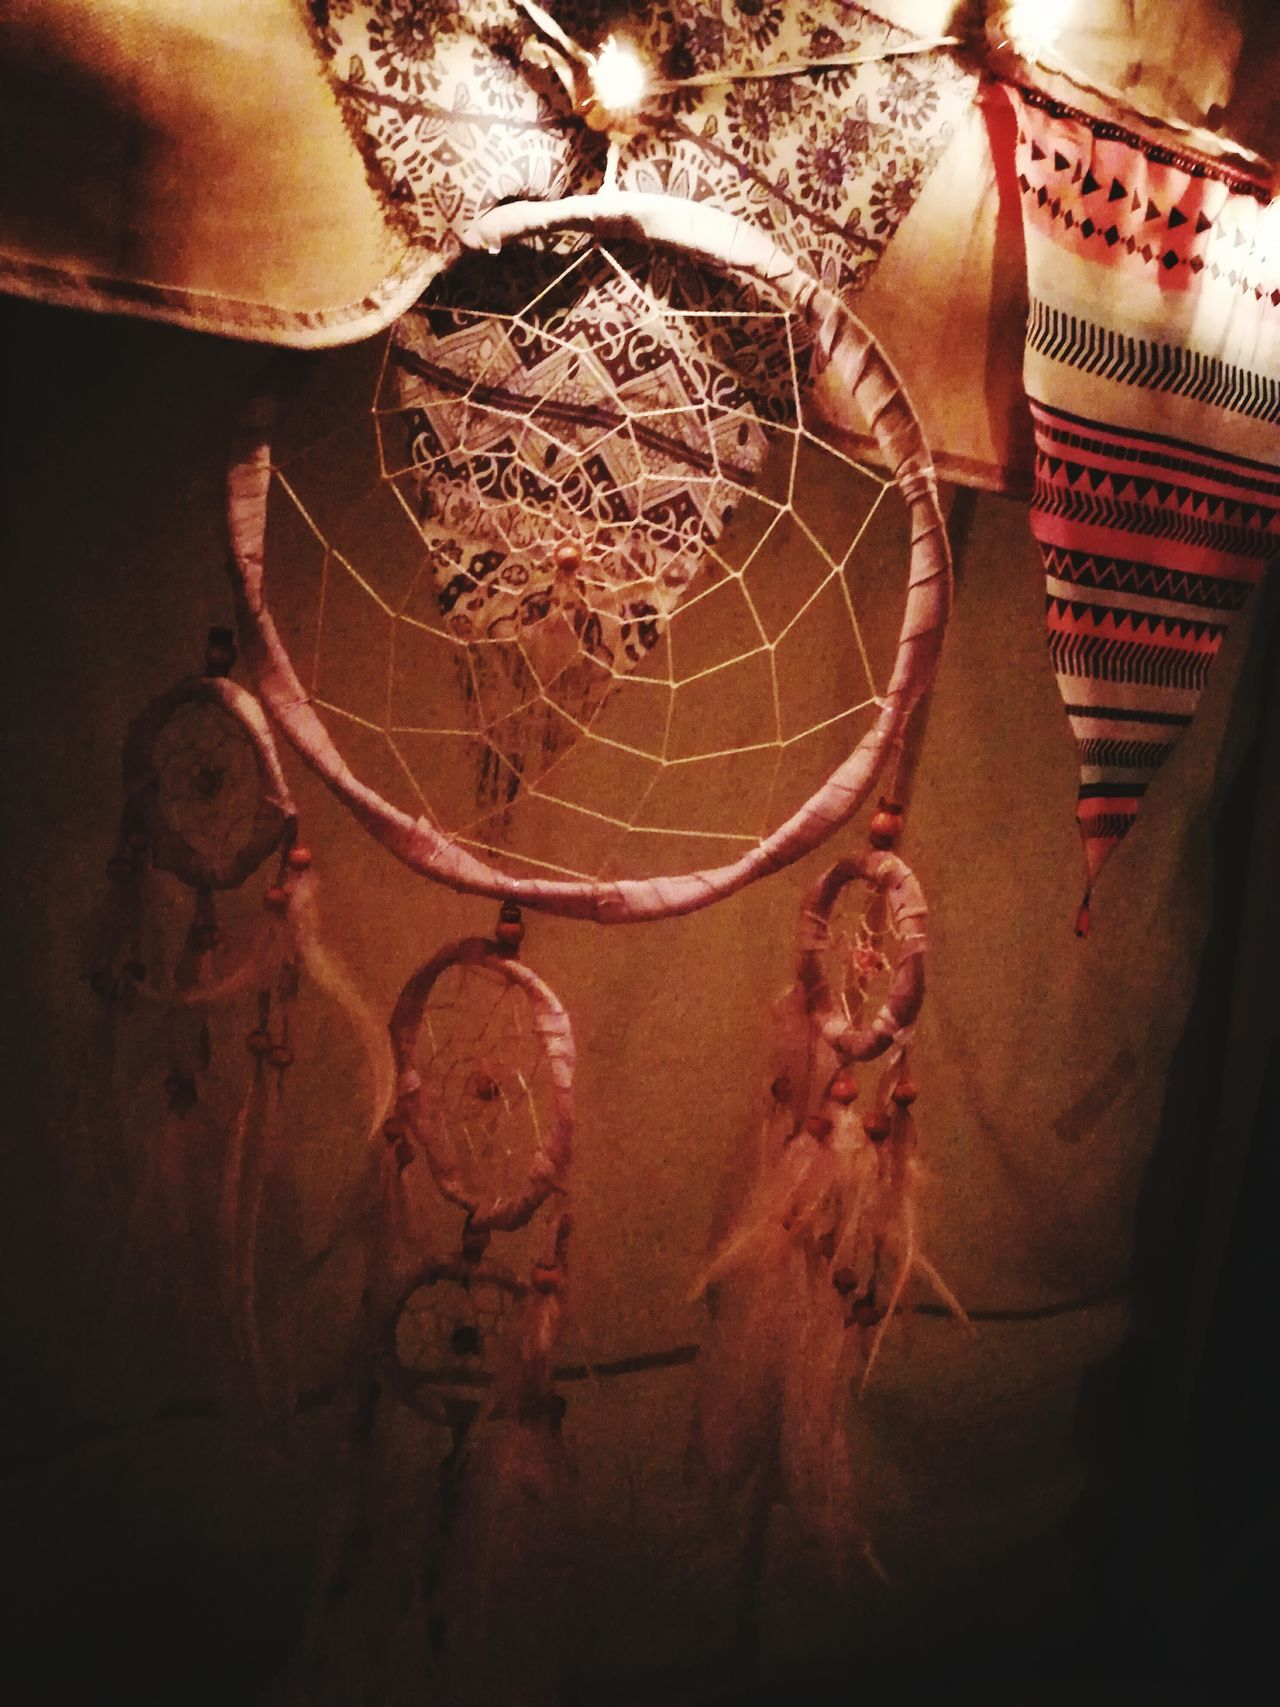 Textured  Netting Indoors  Abstract Backgrounds Close-up Lingerie Spider Web No People Nature Outdoors Happiness Smiling Friendship Sitting Hanging